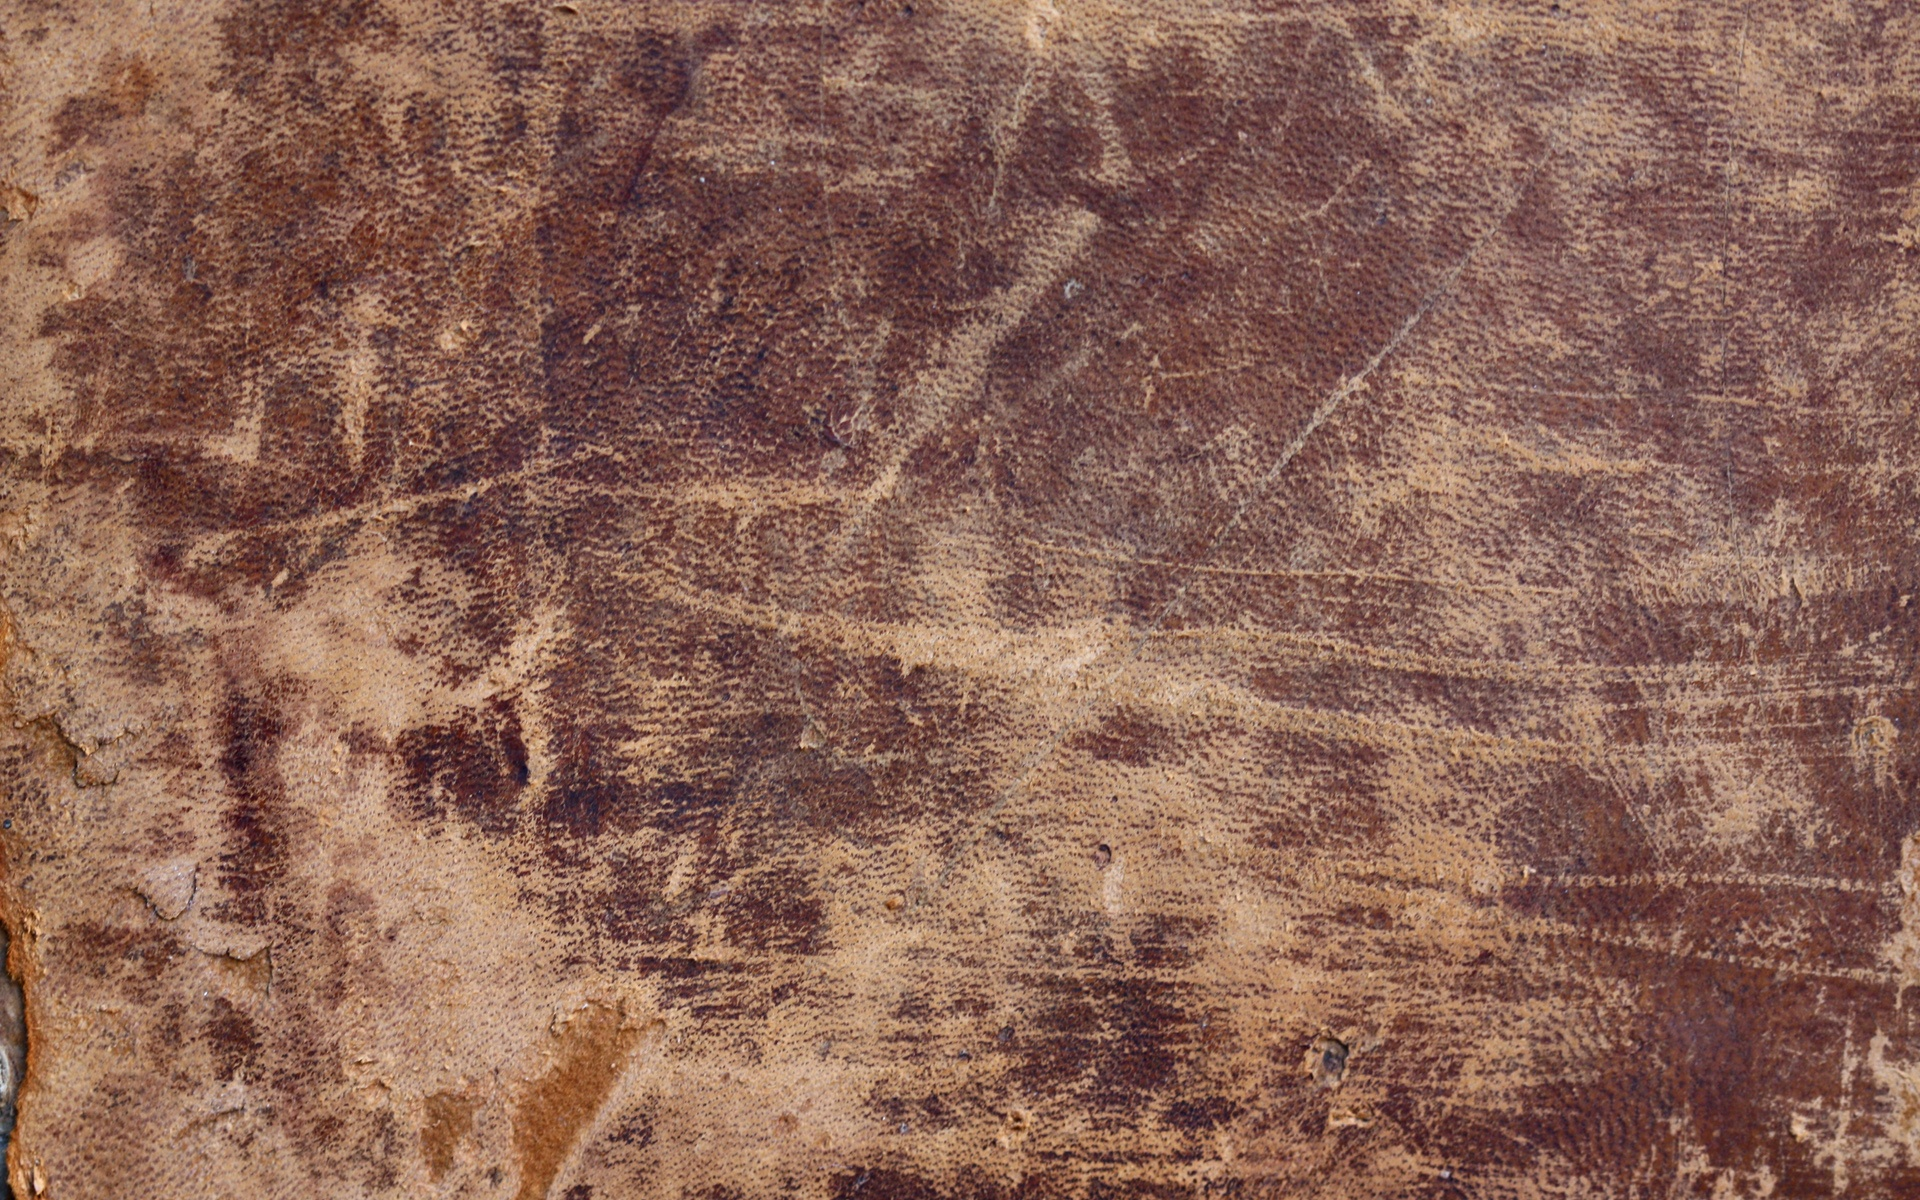 texture cover book leather antique wallpaper textured 1920x1200